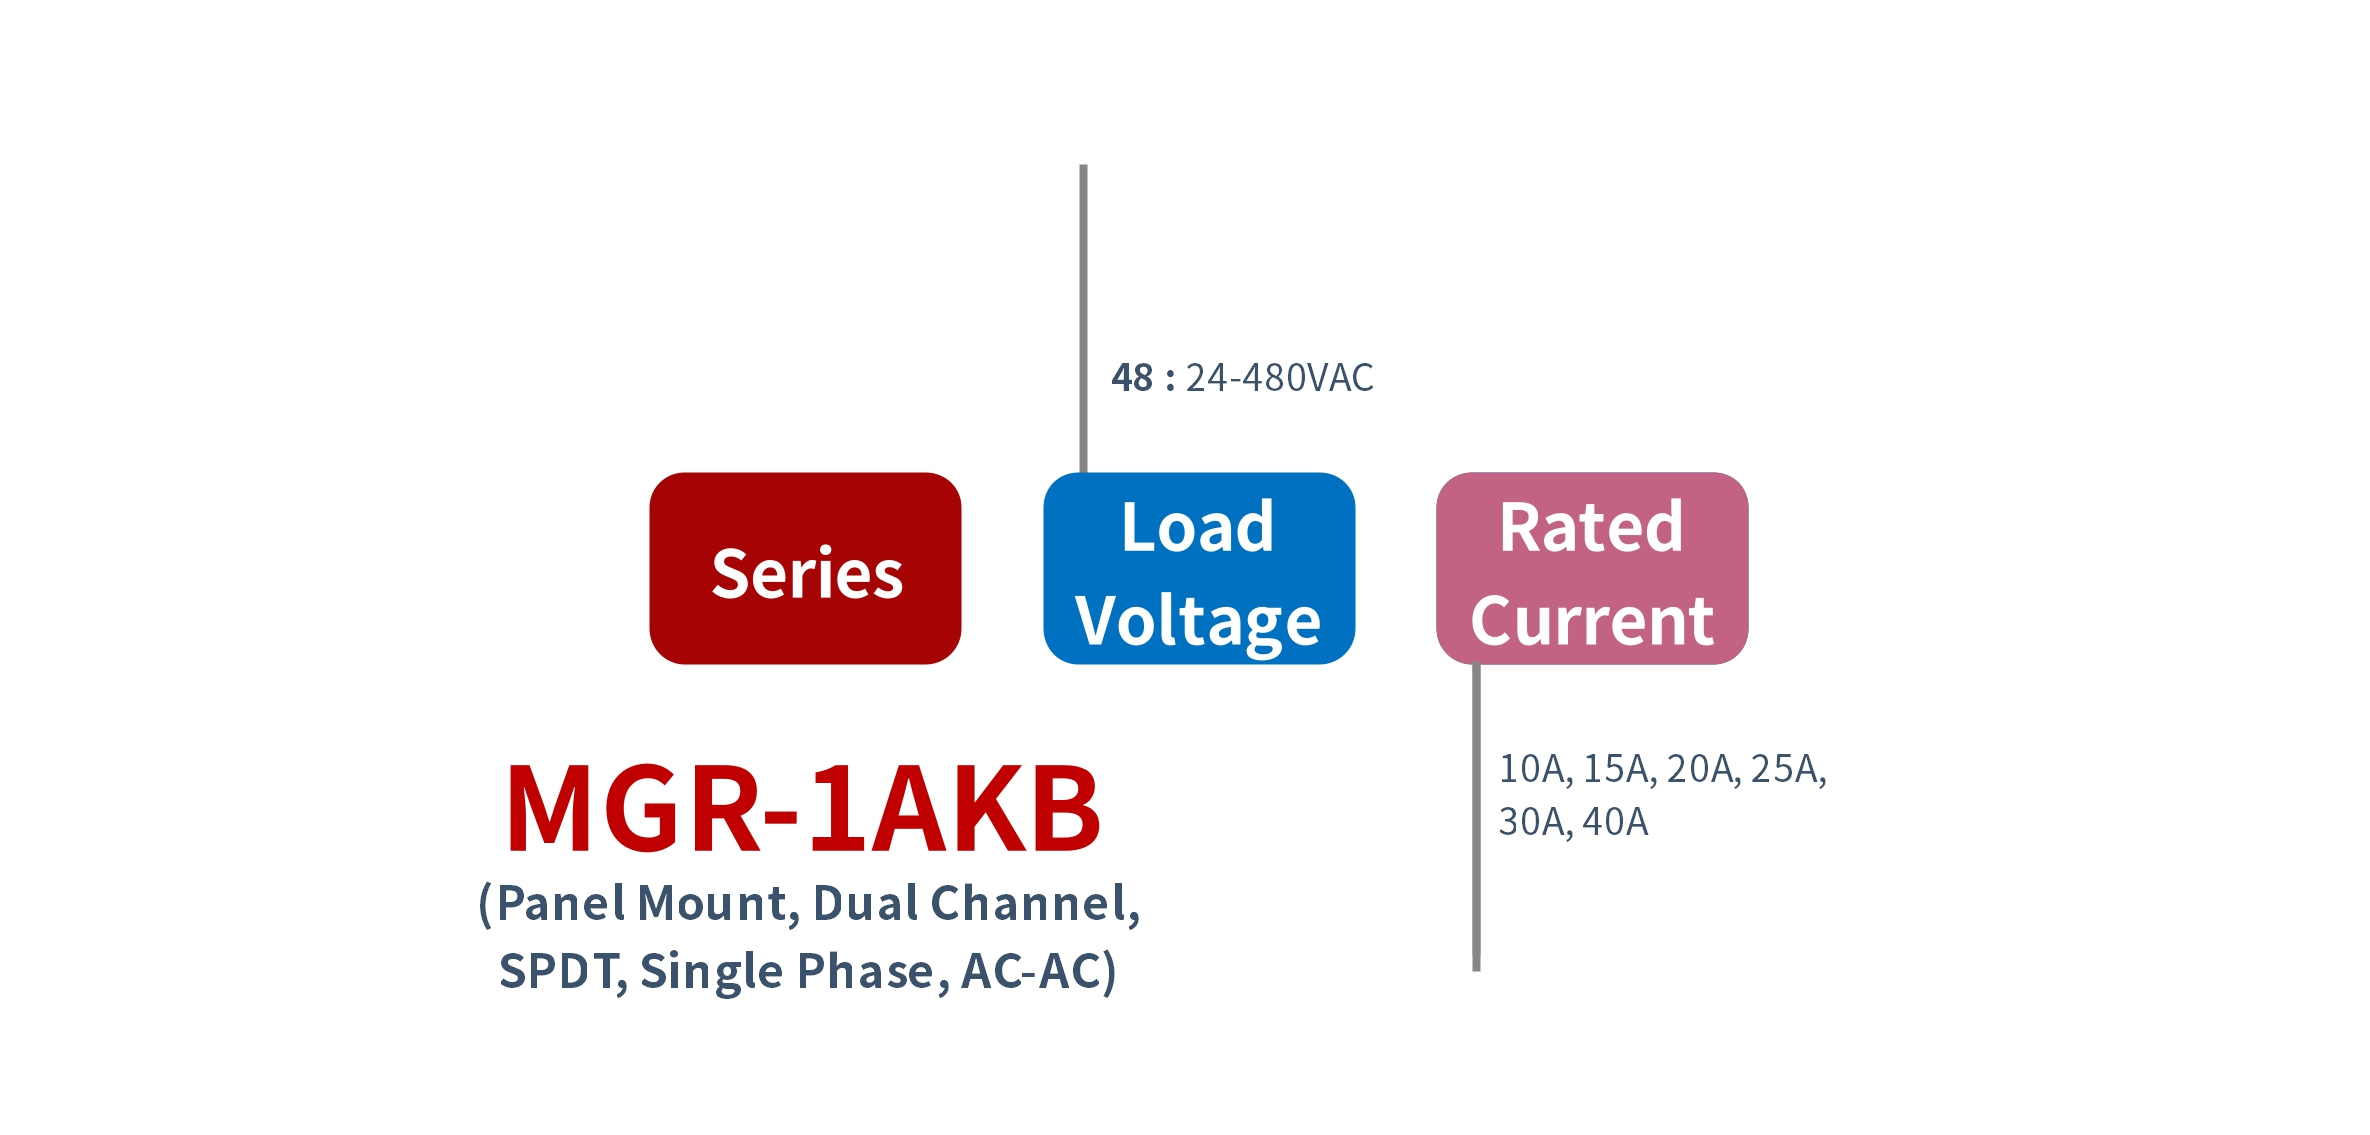 How to order MGR-1AKB Series Panel Mount Solid State Relay